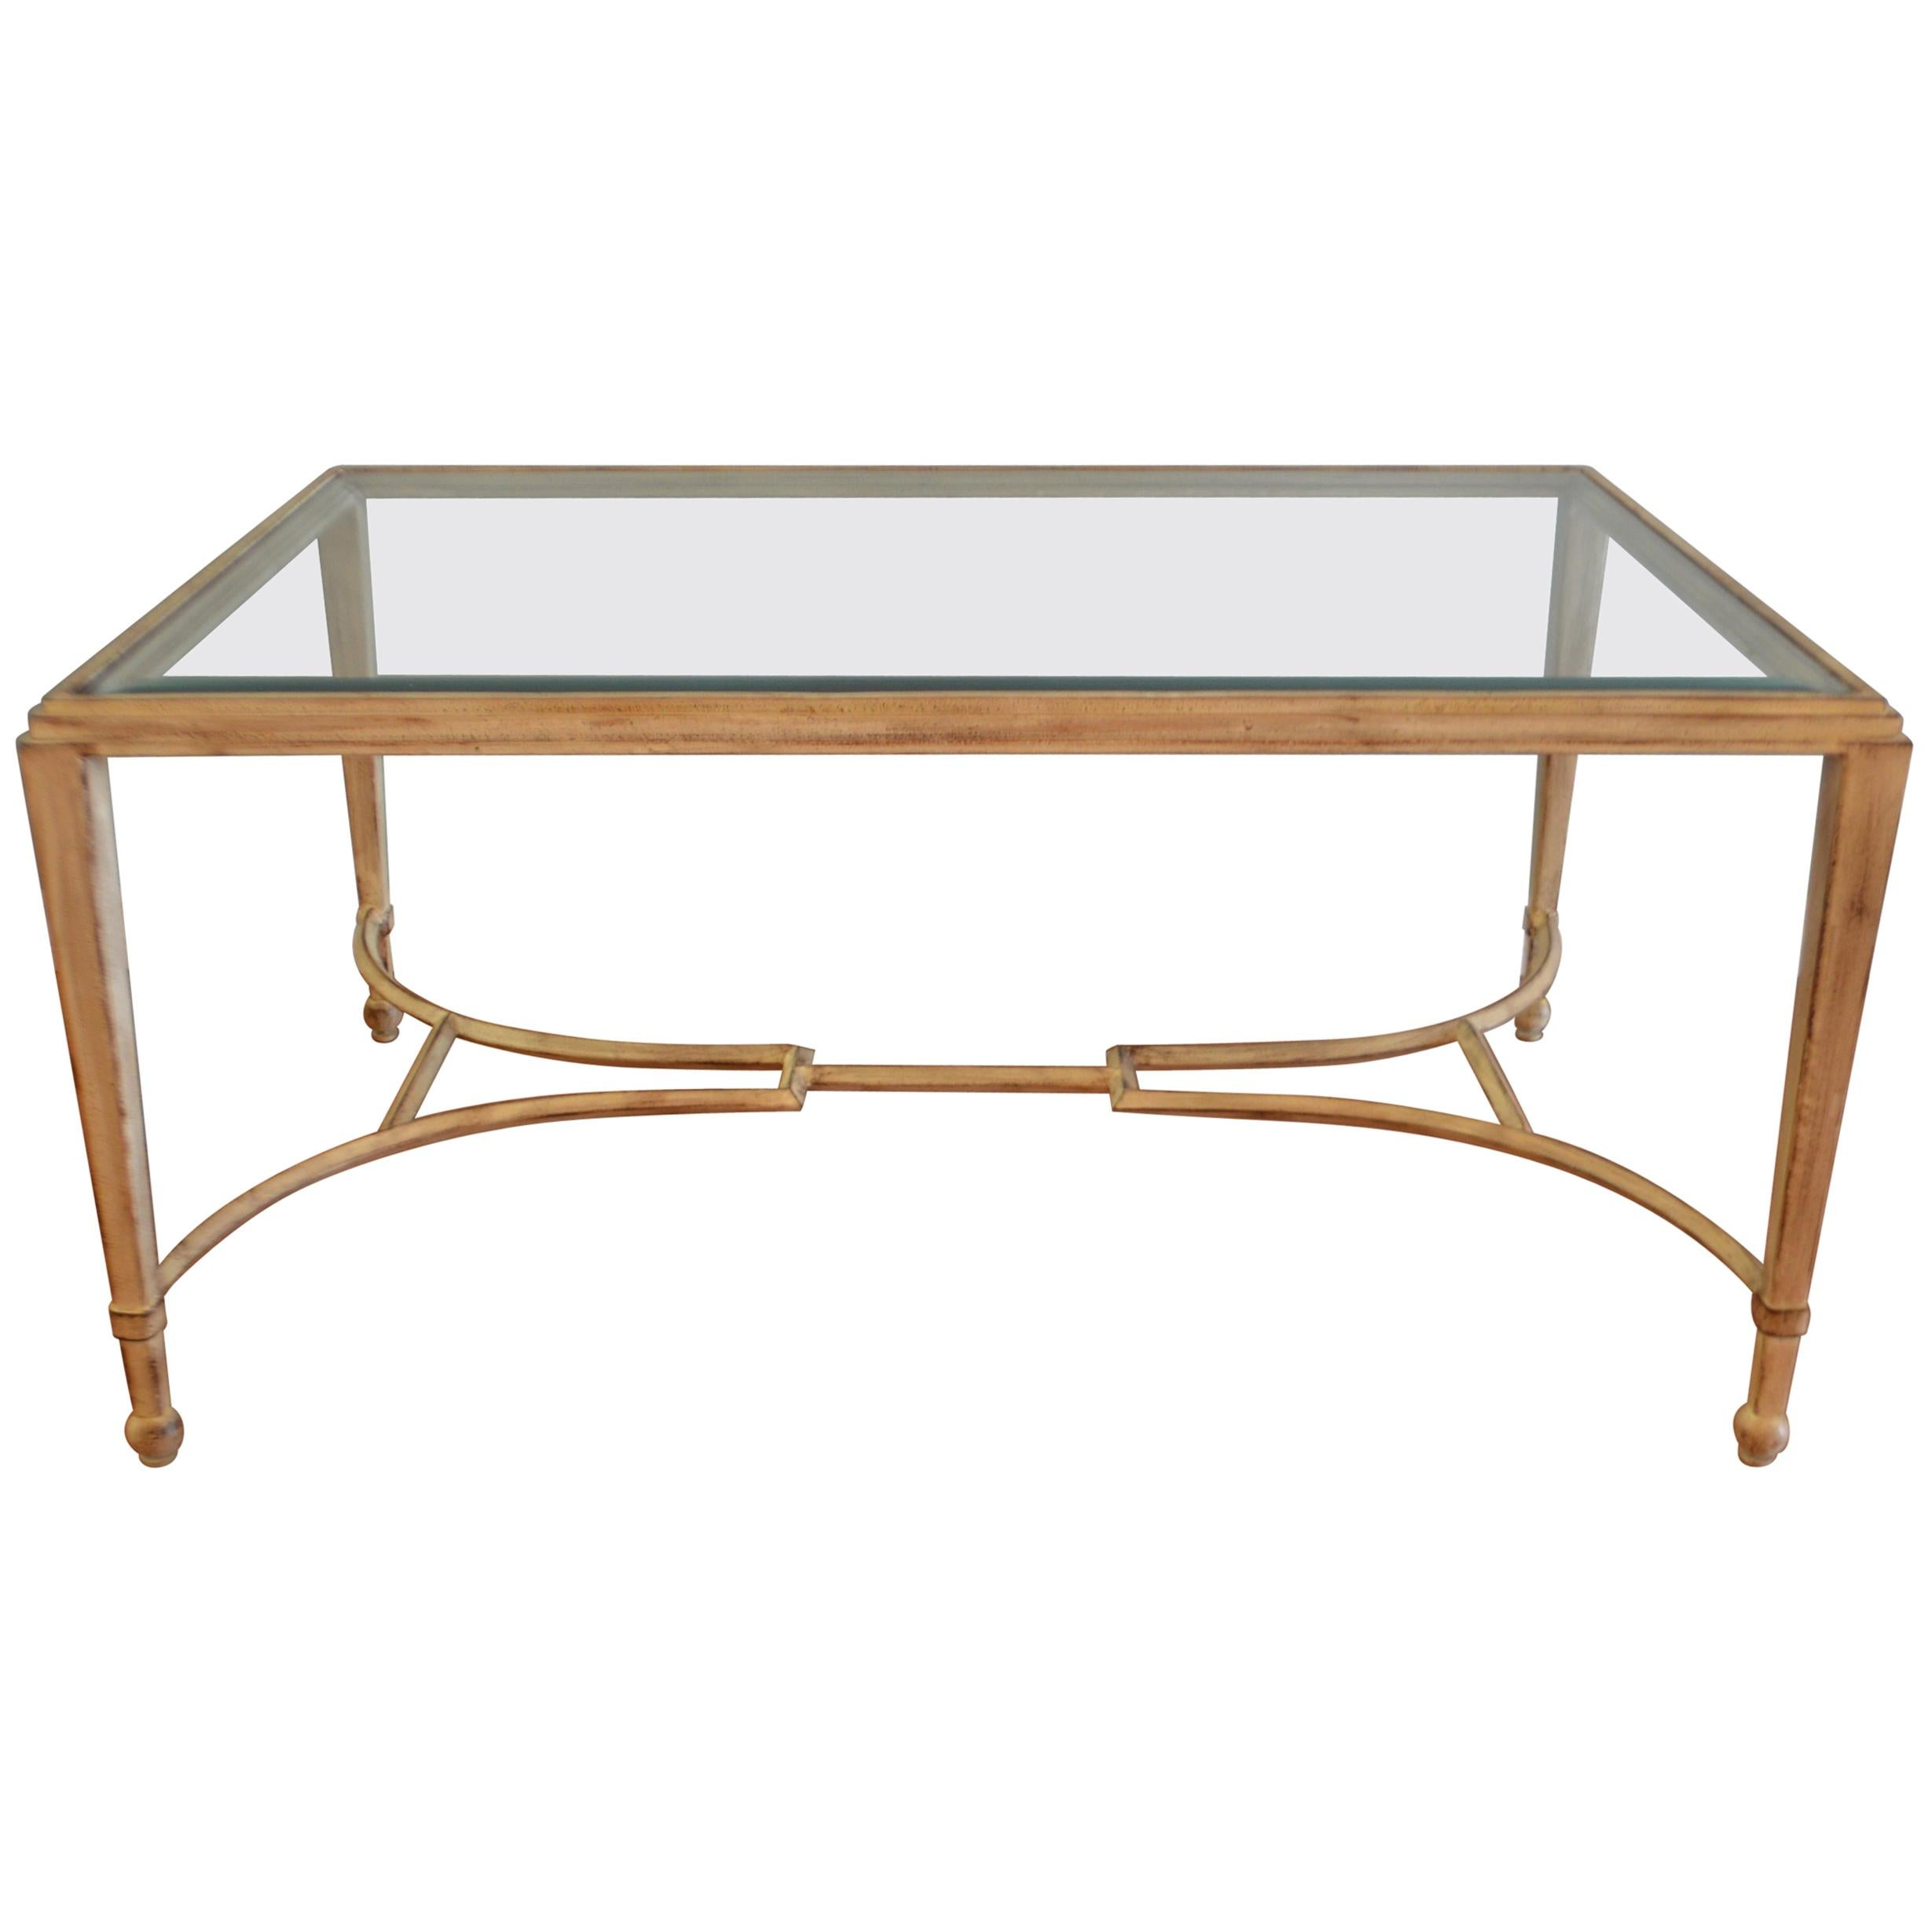 Classic Style, Painted Wrought Iron Coffee Table With Beveled Glass Top